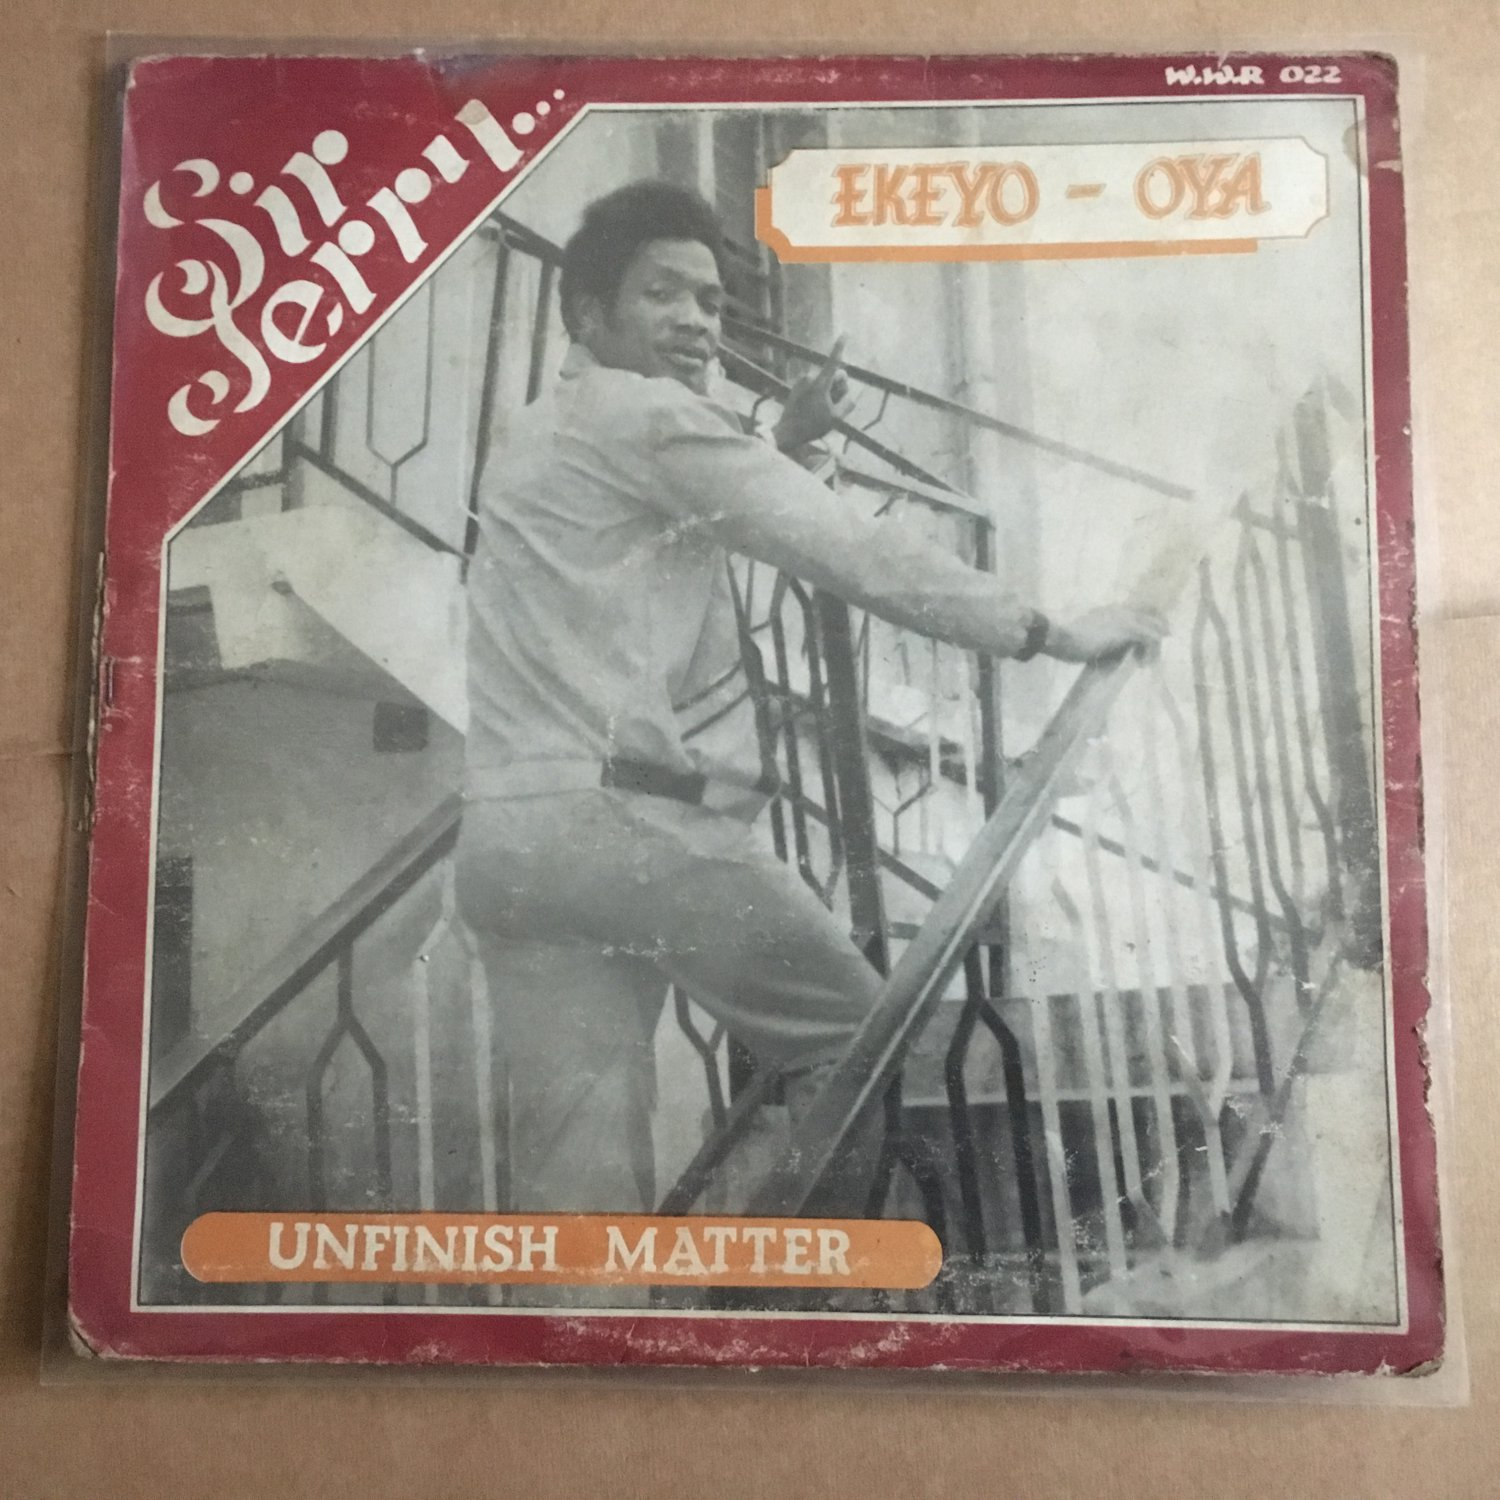 SIR JERRY OSHIORENUA & THE HEROES DANCE BAND LP same NIGERIA mp3 LISTEN